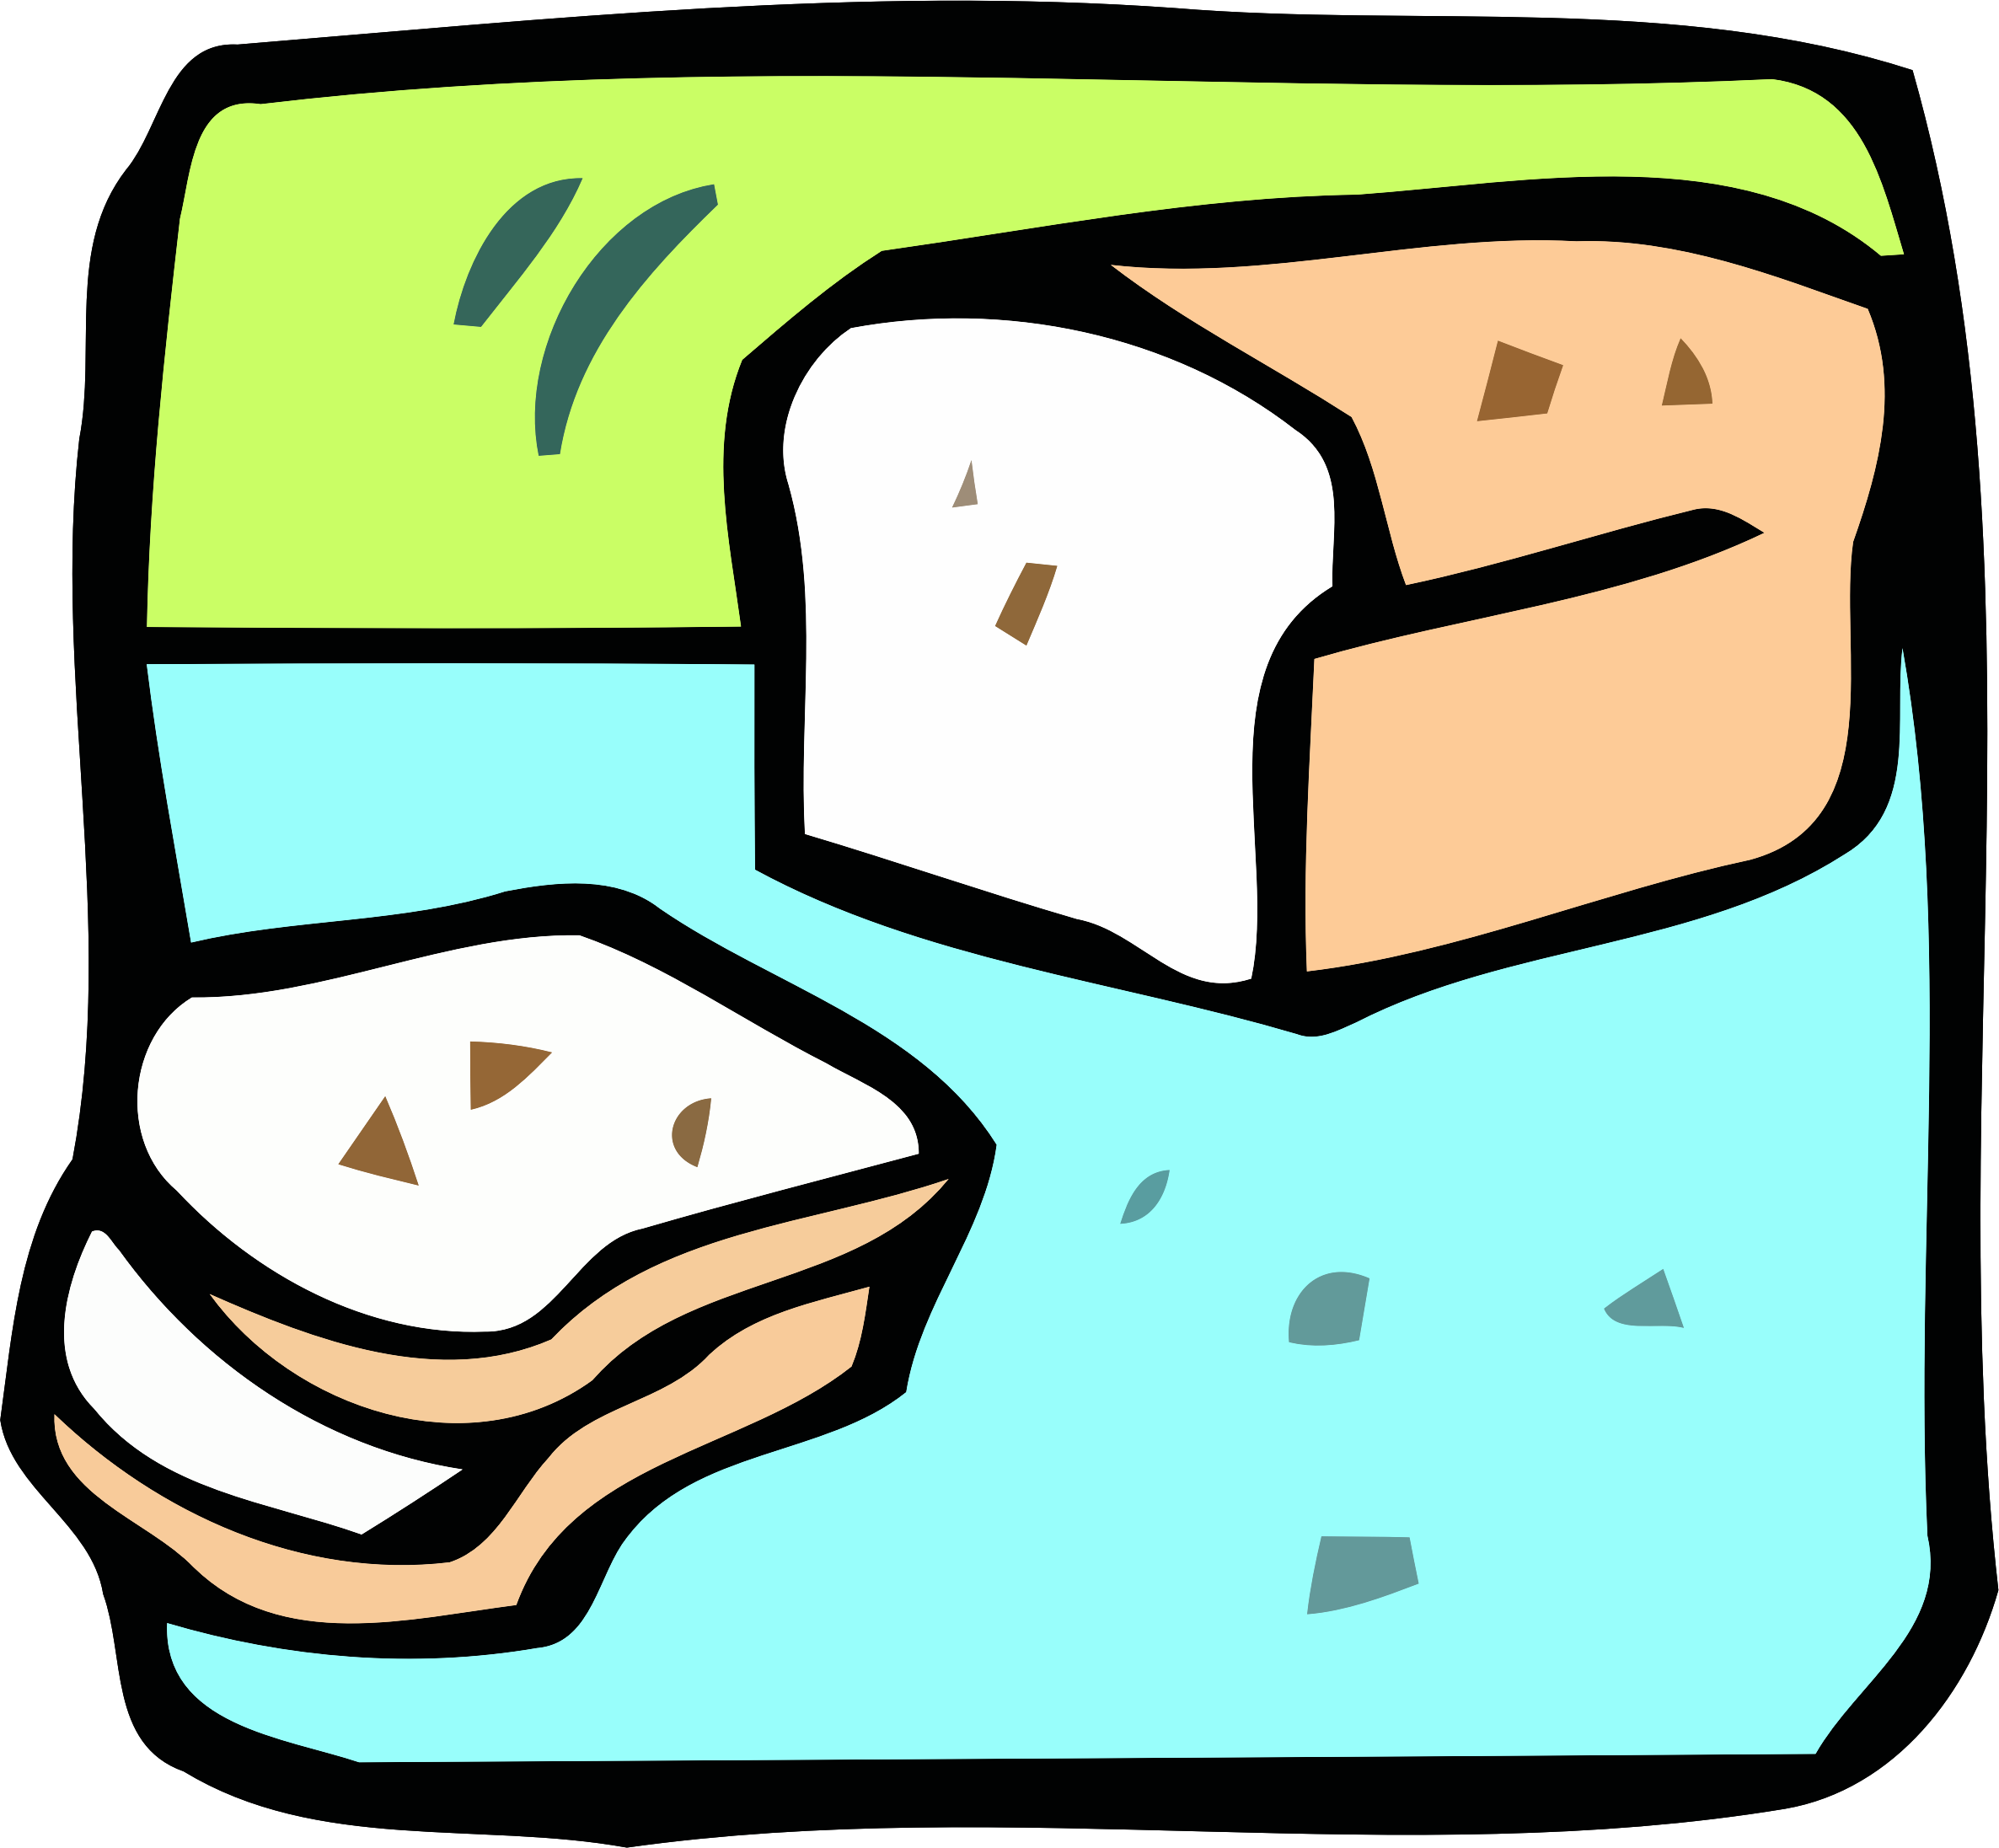 Food and drink icon - bread by Firkin